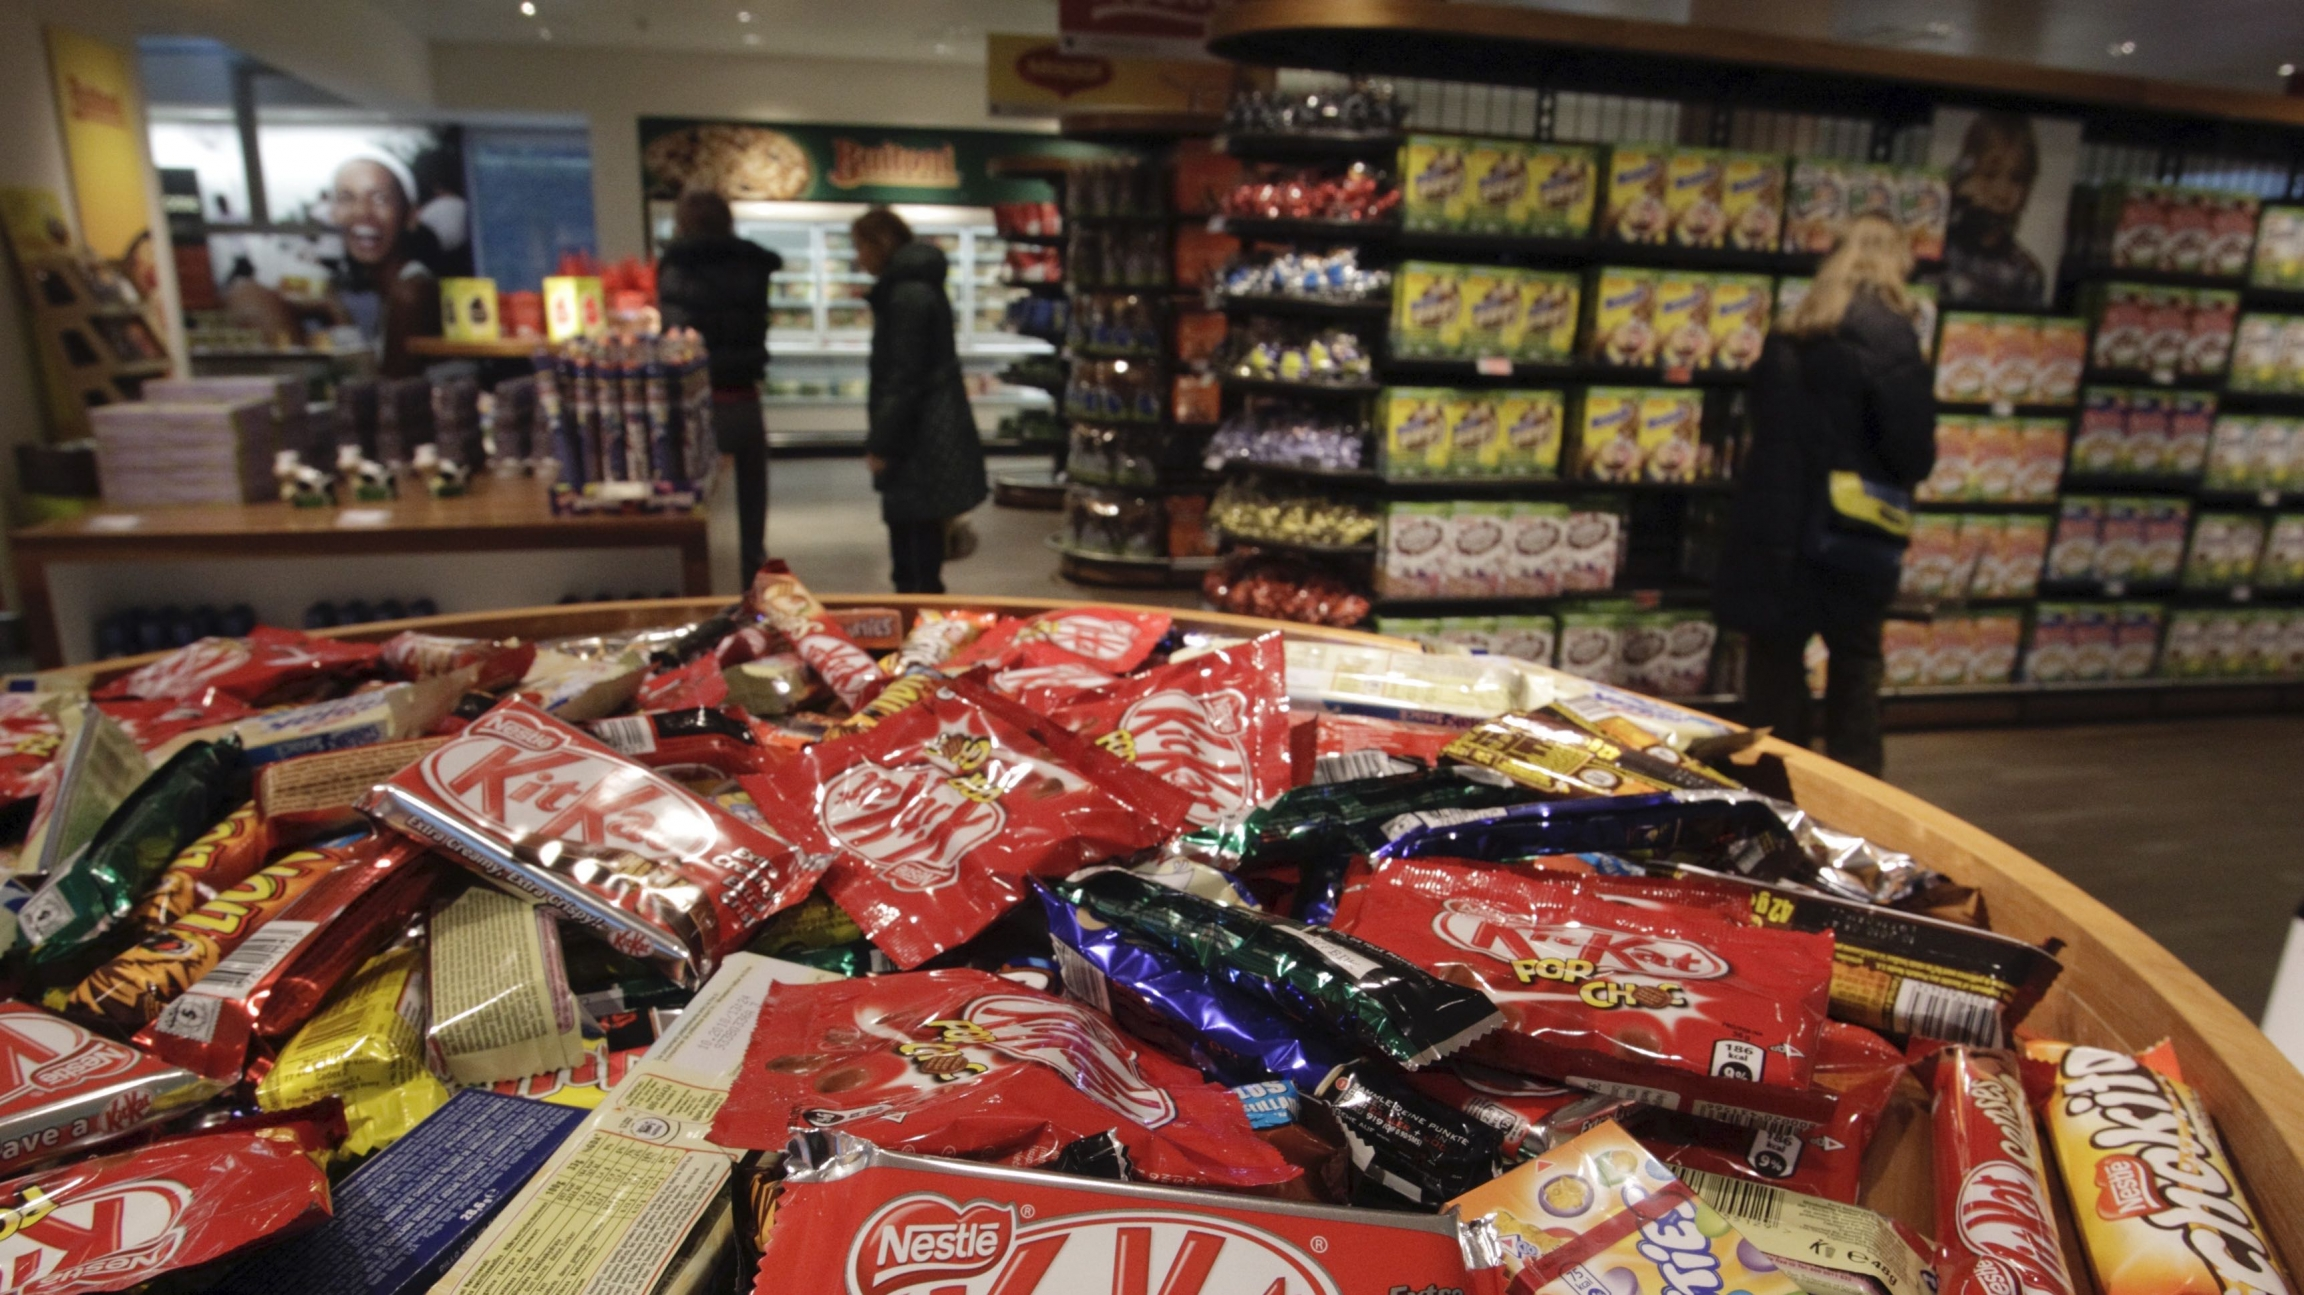 Different types of chocolate bars are seen in the company supermarket at the Nestle headquarters in Vevey, Switzerland, Feb.19, 2010. Nestle, the world's biggest food group, is aiming for higher underlying sales growth in 2010 after a robust performance